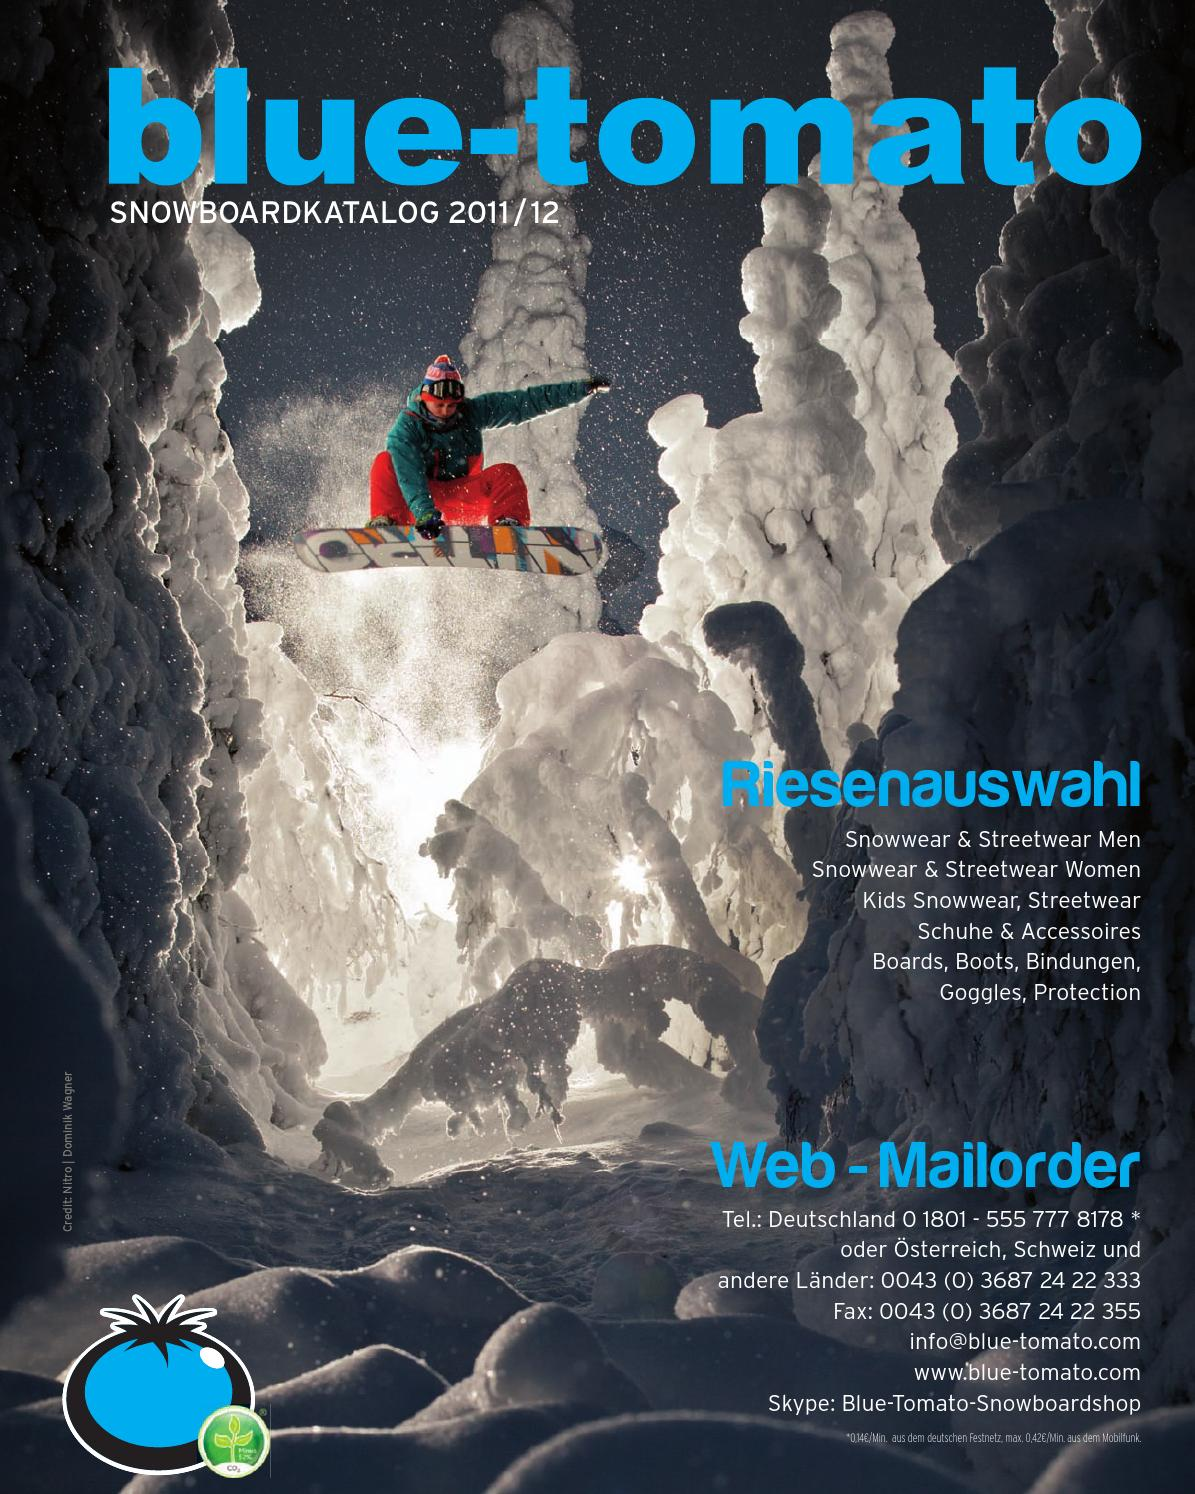 Blue Tomato Snowboardkatalog 2011 12 By Blue Tomato Issuu